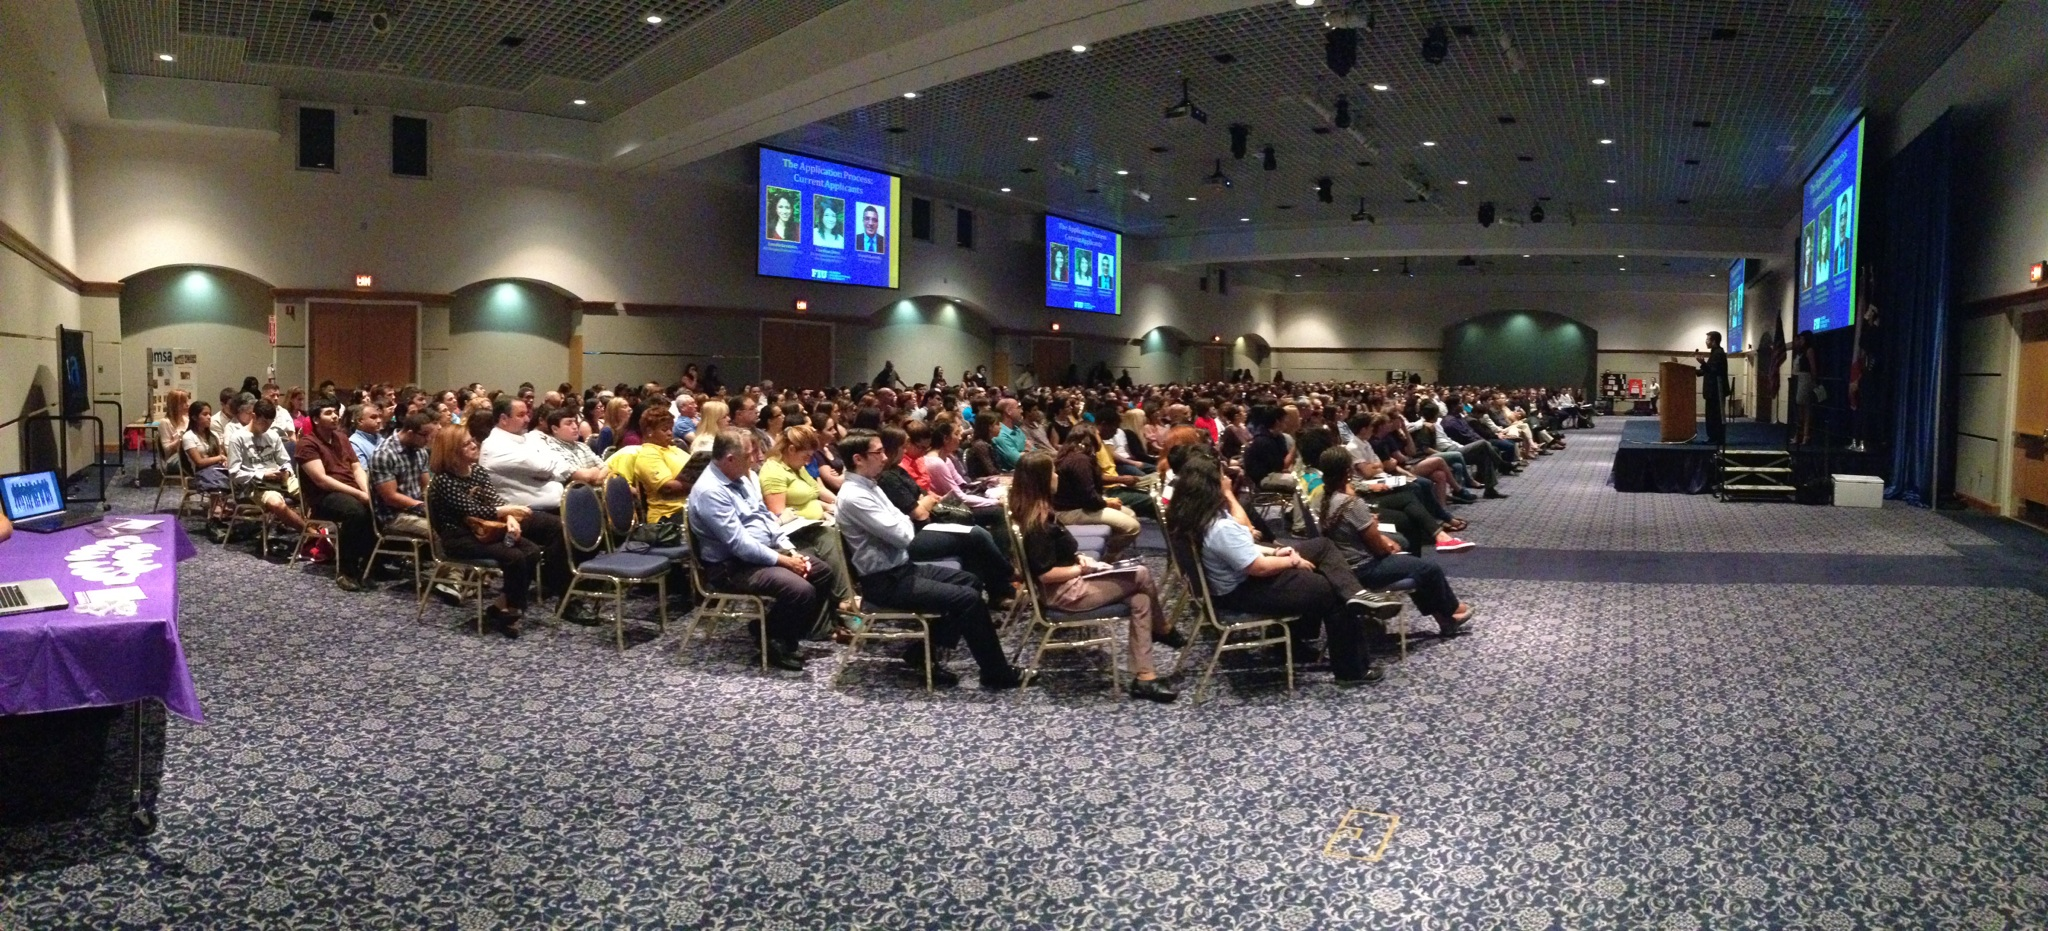 Hundreds turned out for the 6th Annual FIU Pre-Medical Informational Forum